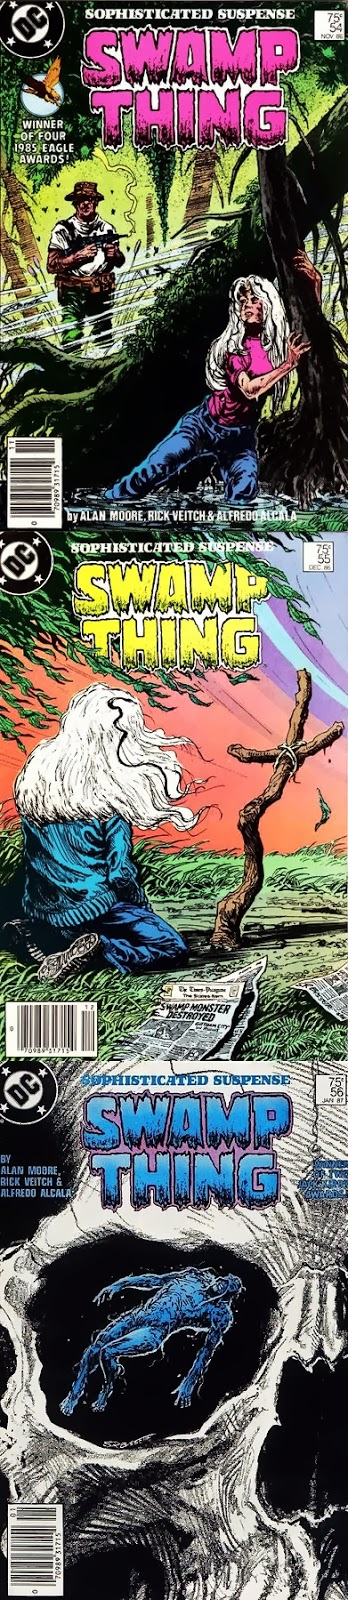 Swamp Thing # 54, 55 56 - Moore, Veitch Alcalá